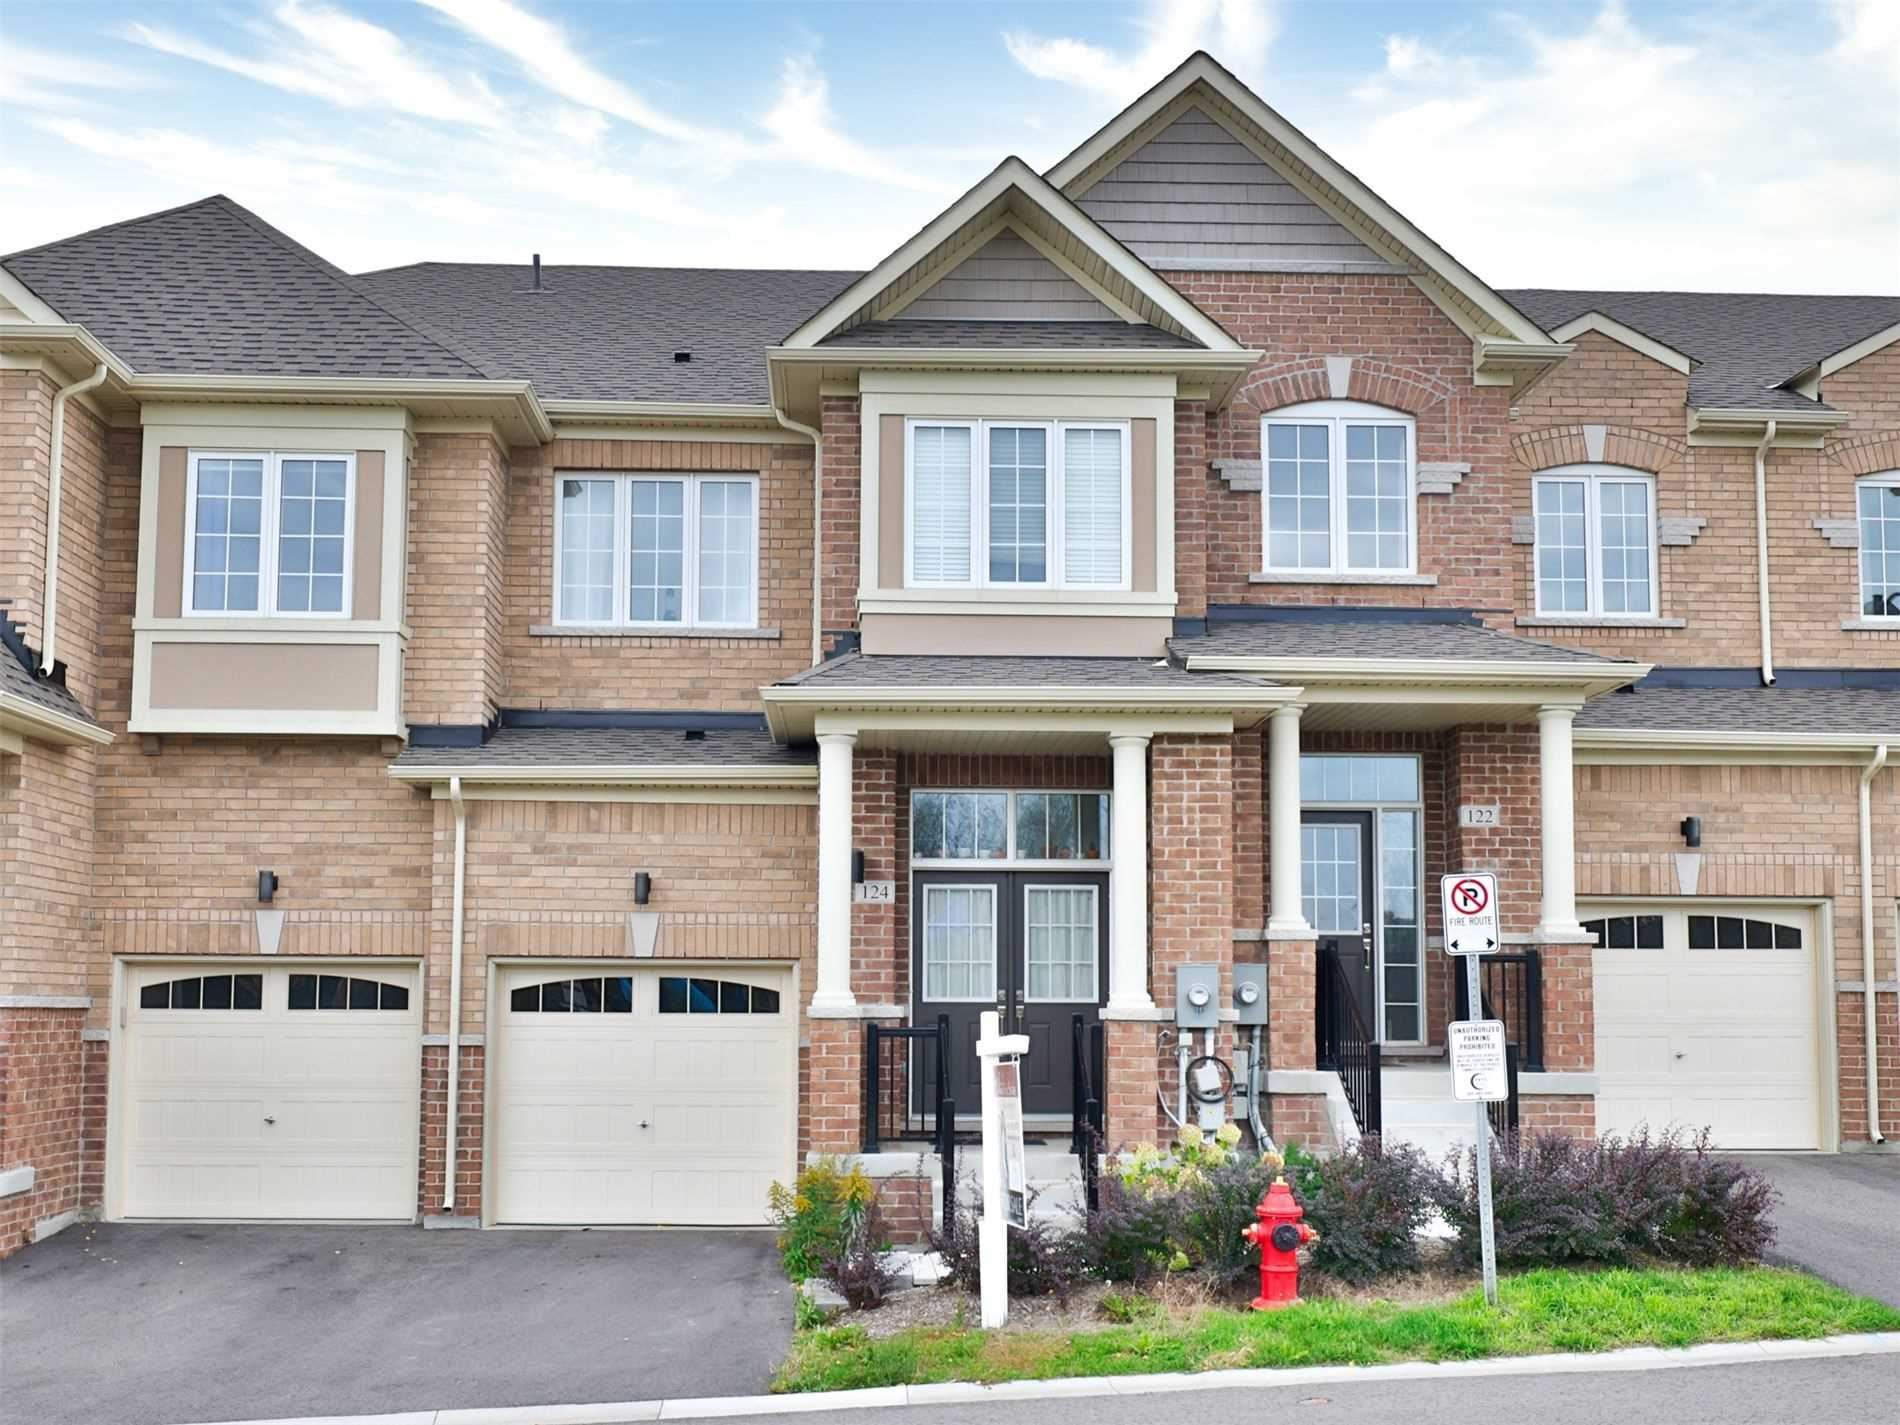 124 Knott End Cres, Newmarket, ON L3Y0E4 - MLS#: N5409444